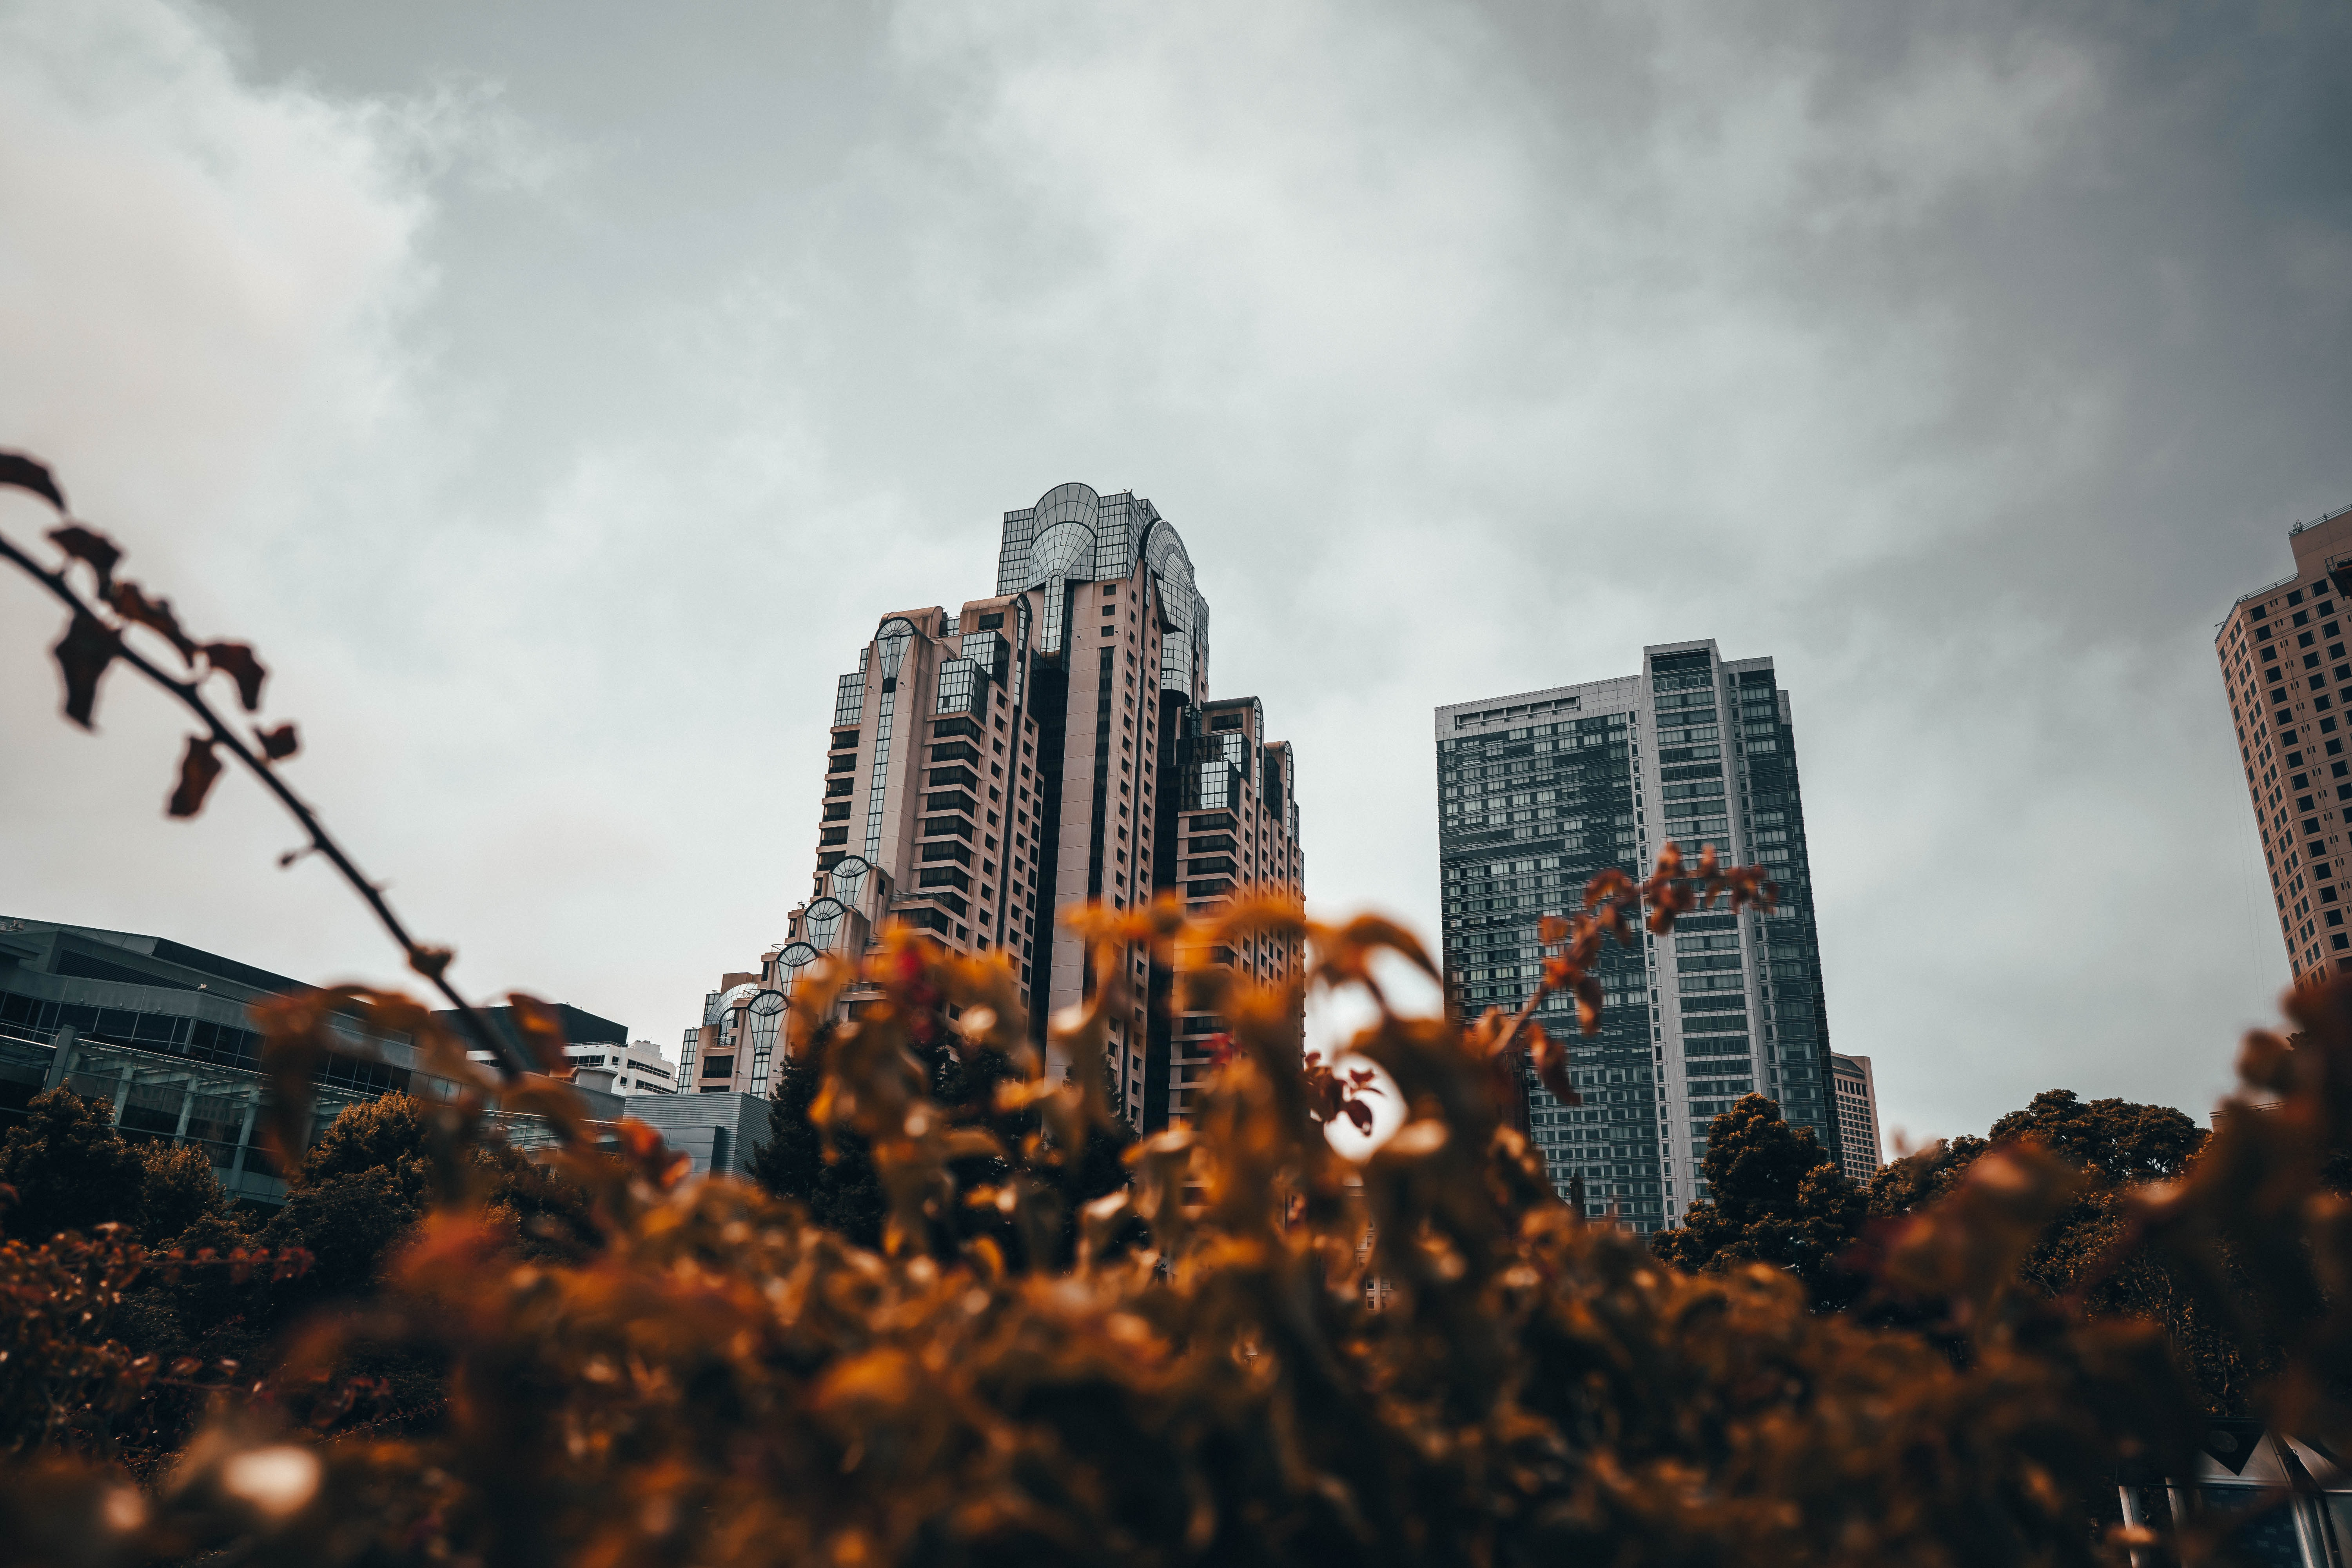 worm's-eye view of building under cloudy sky